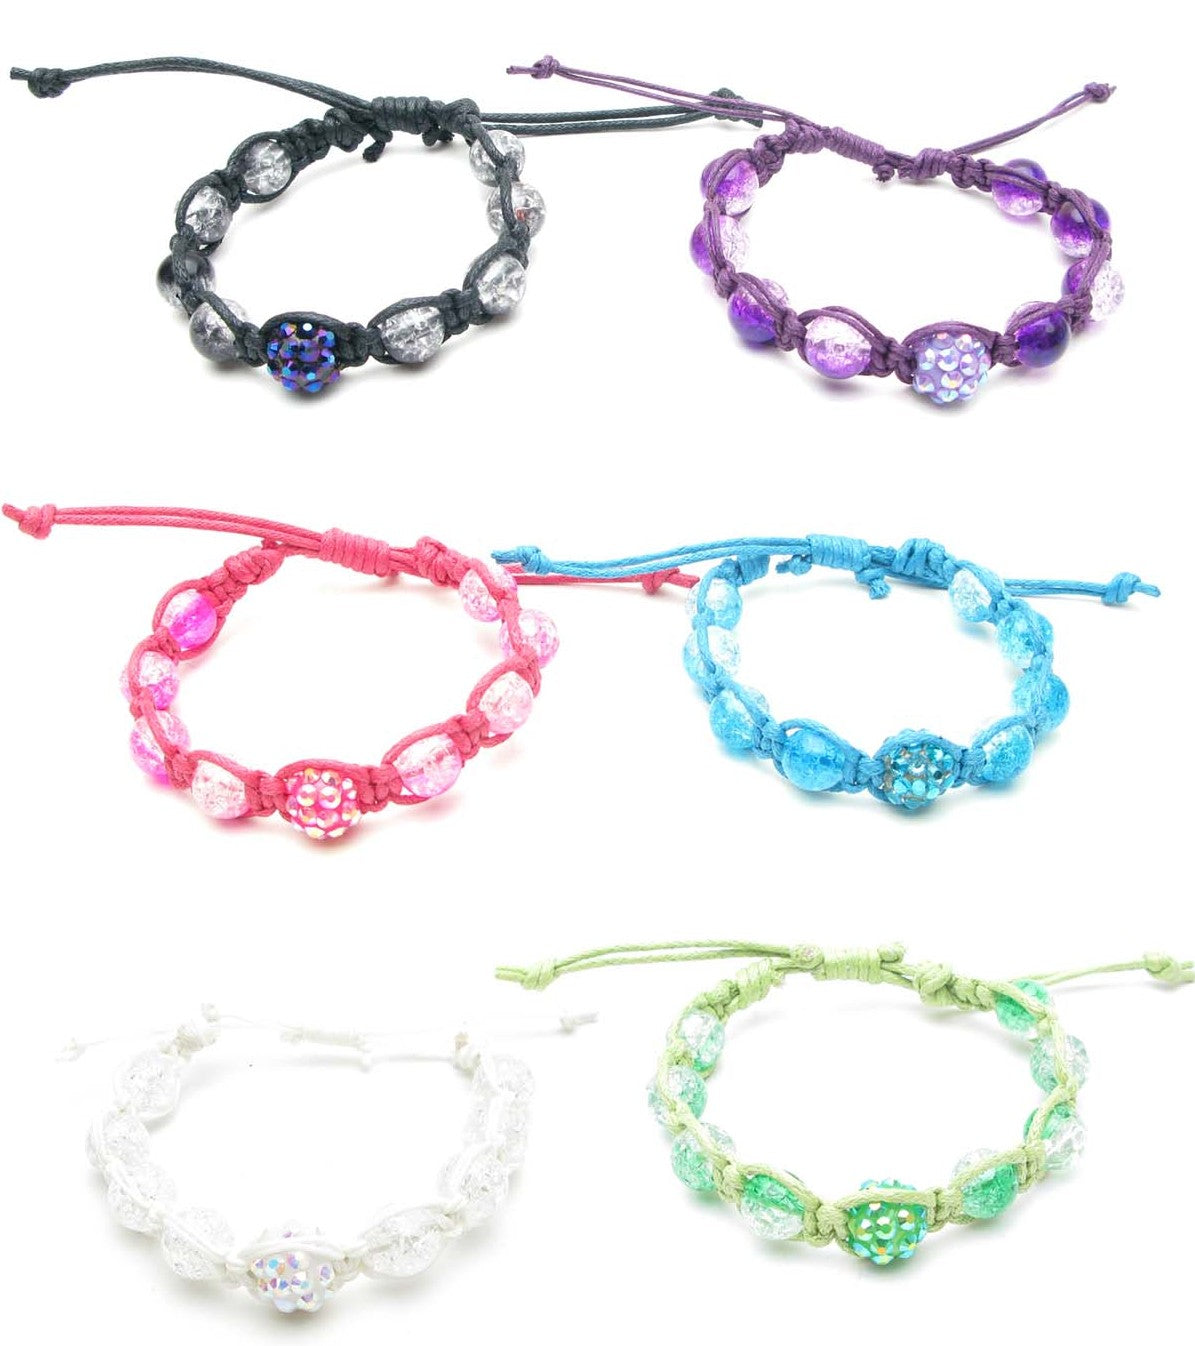 RFB967B Disco balls & Glitter Beads Braid 2mm Cord Bracelets - 12 Pcs Pack Unit